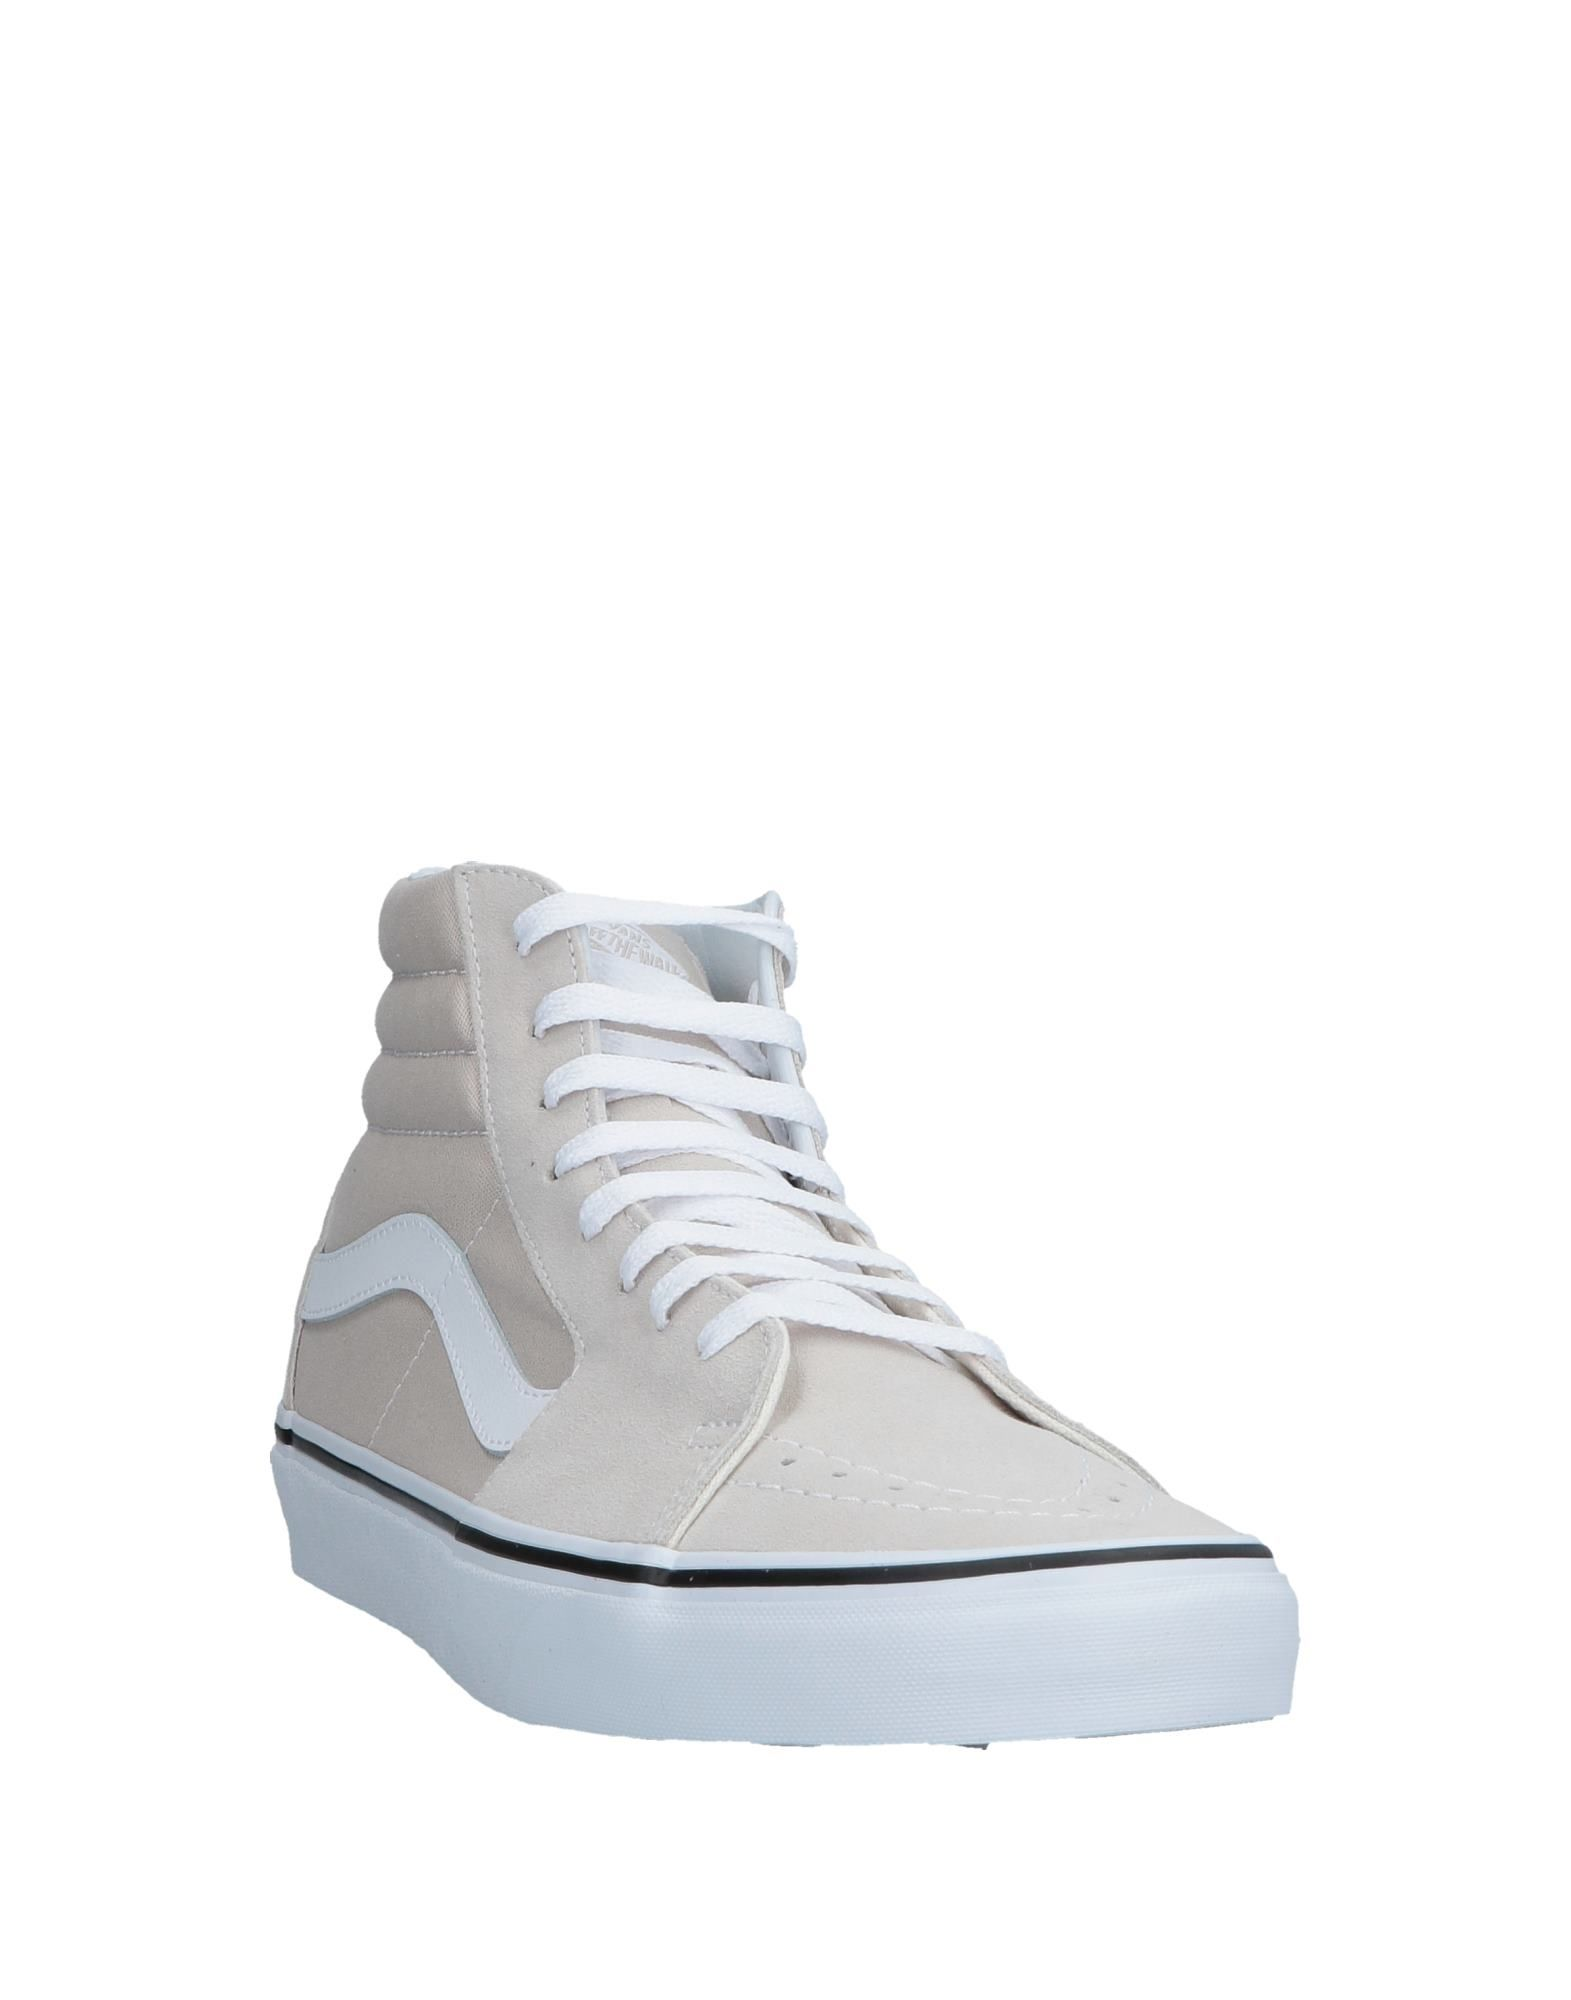 Vans Sneakers - Men Vans Sneakers - online on  Canada - Sneakers 11574193XR b278a6